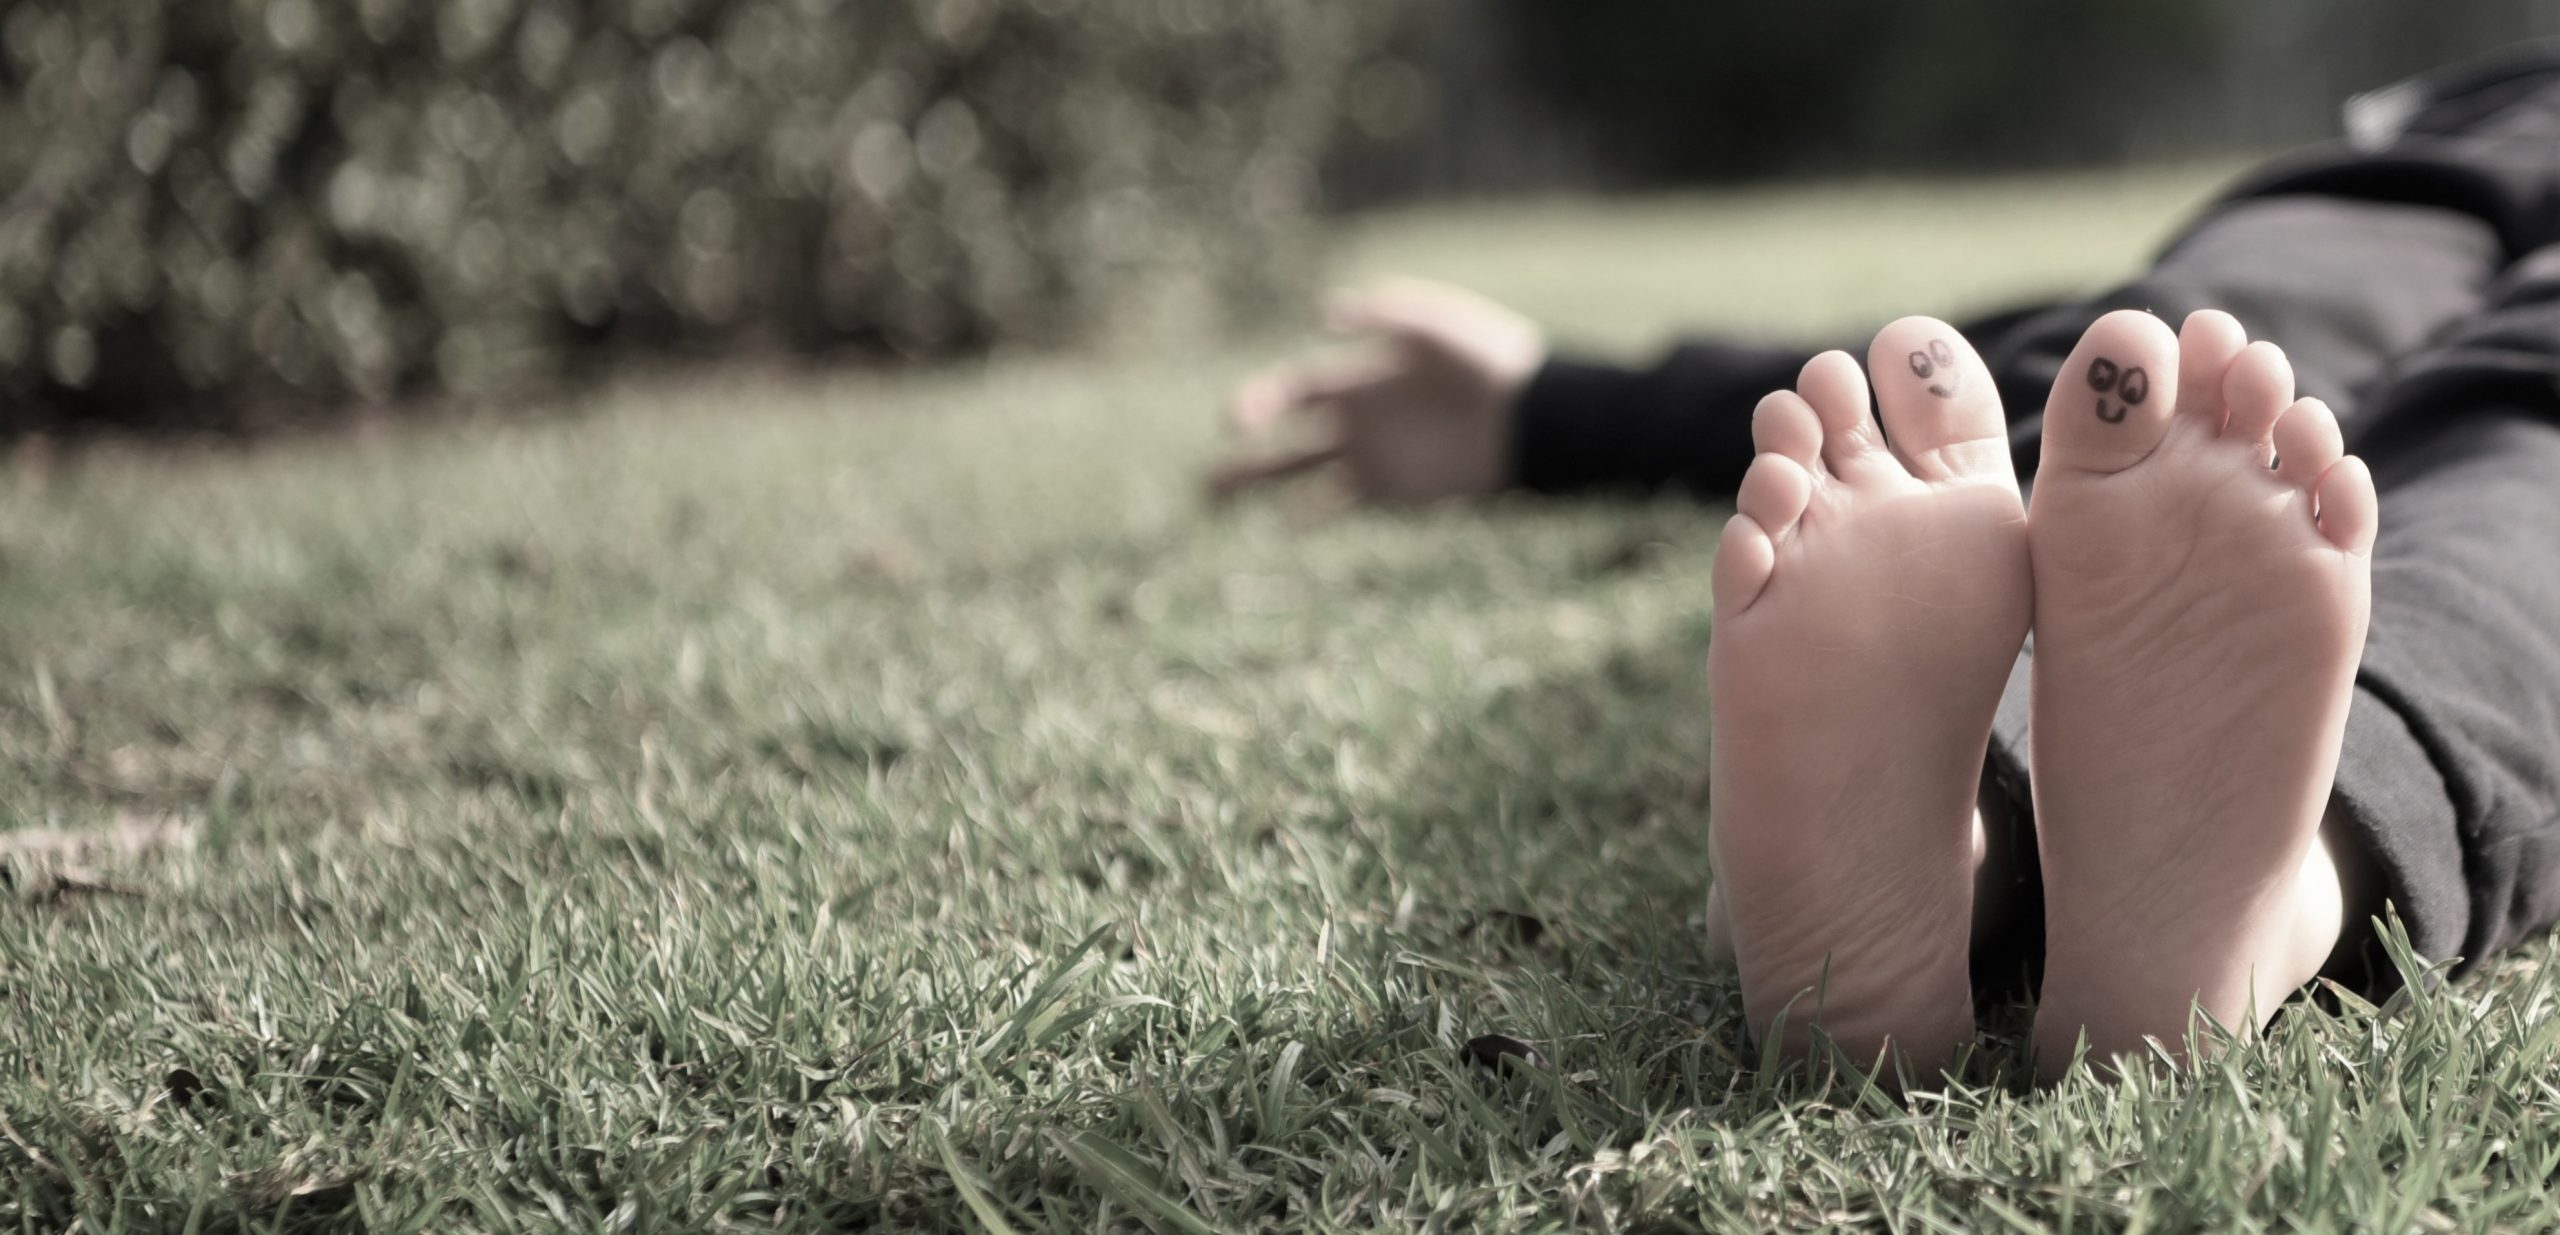 Pair of feet with smiley faces drawn on big toes, person laying on the grass